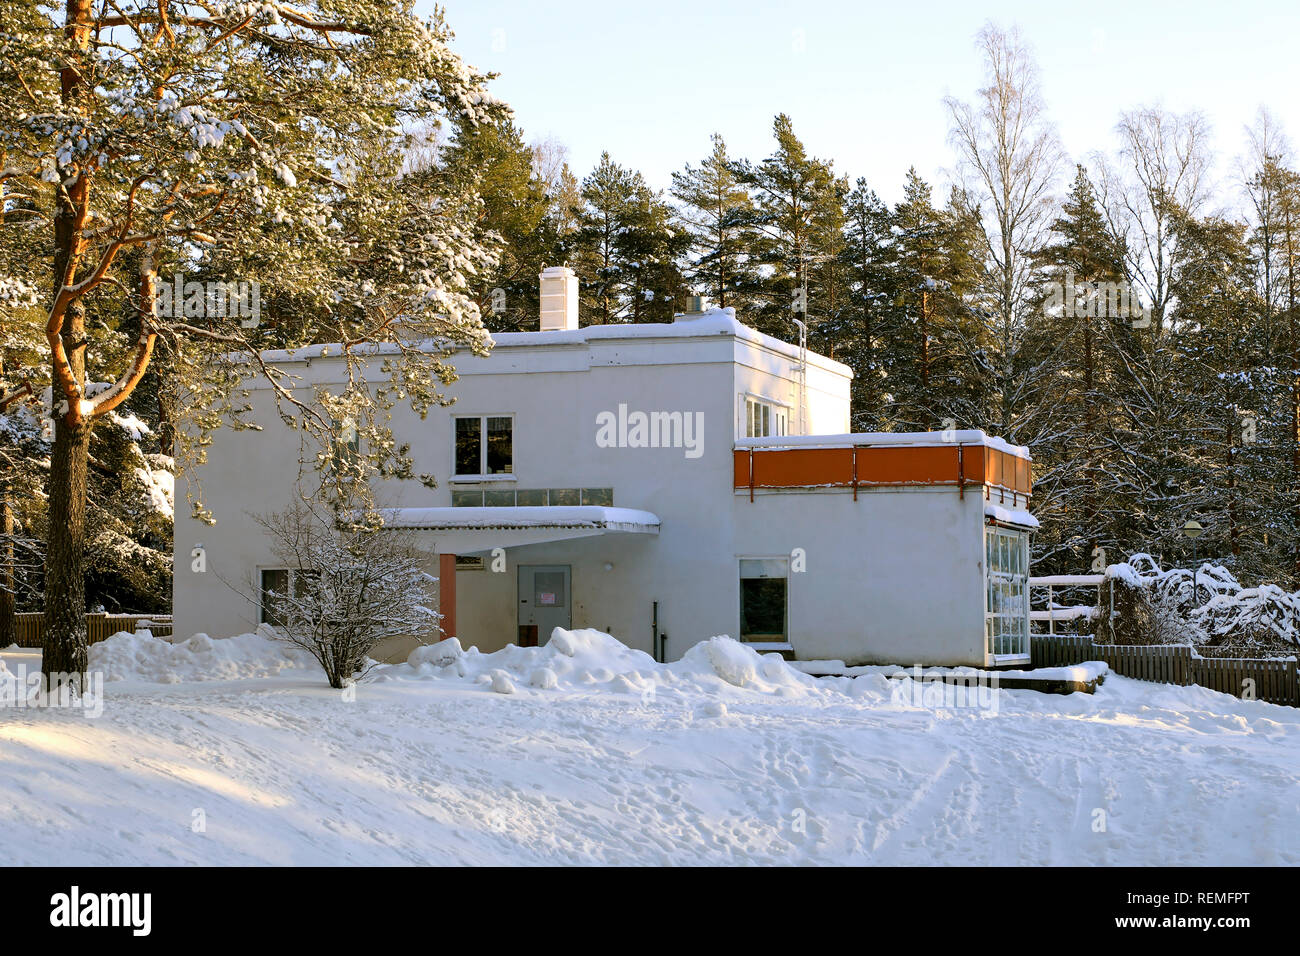 Paimio Sanatorium, former head physician's house, currently kindergarten. Designed by Alvar Aalto, completed 1933. Paimio, Finland. January 20, 2019. - Stock Image